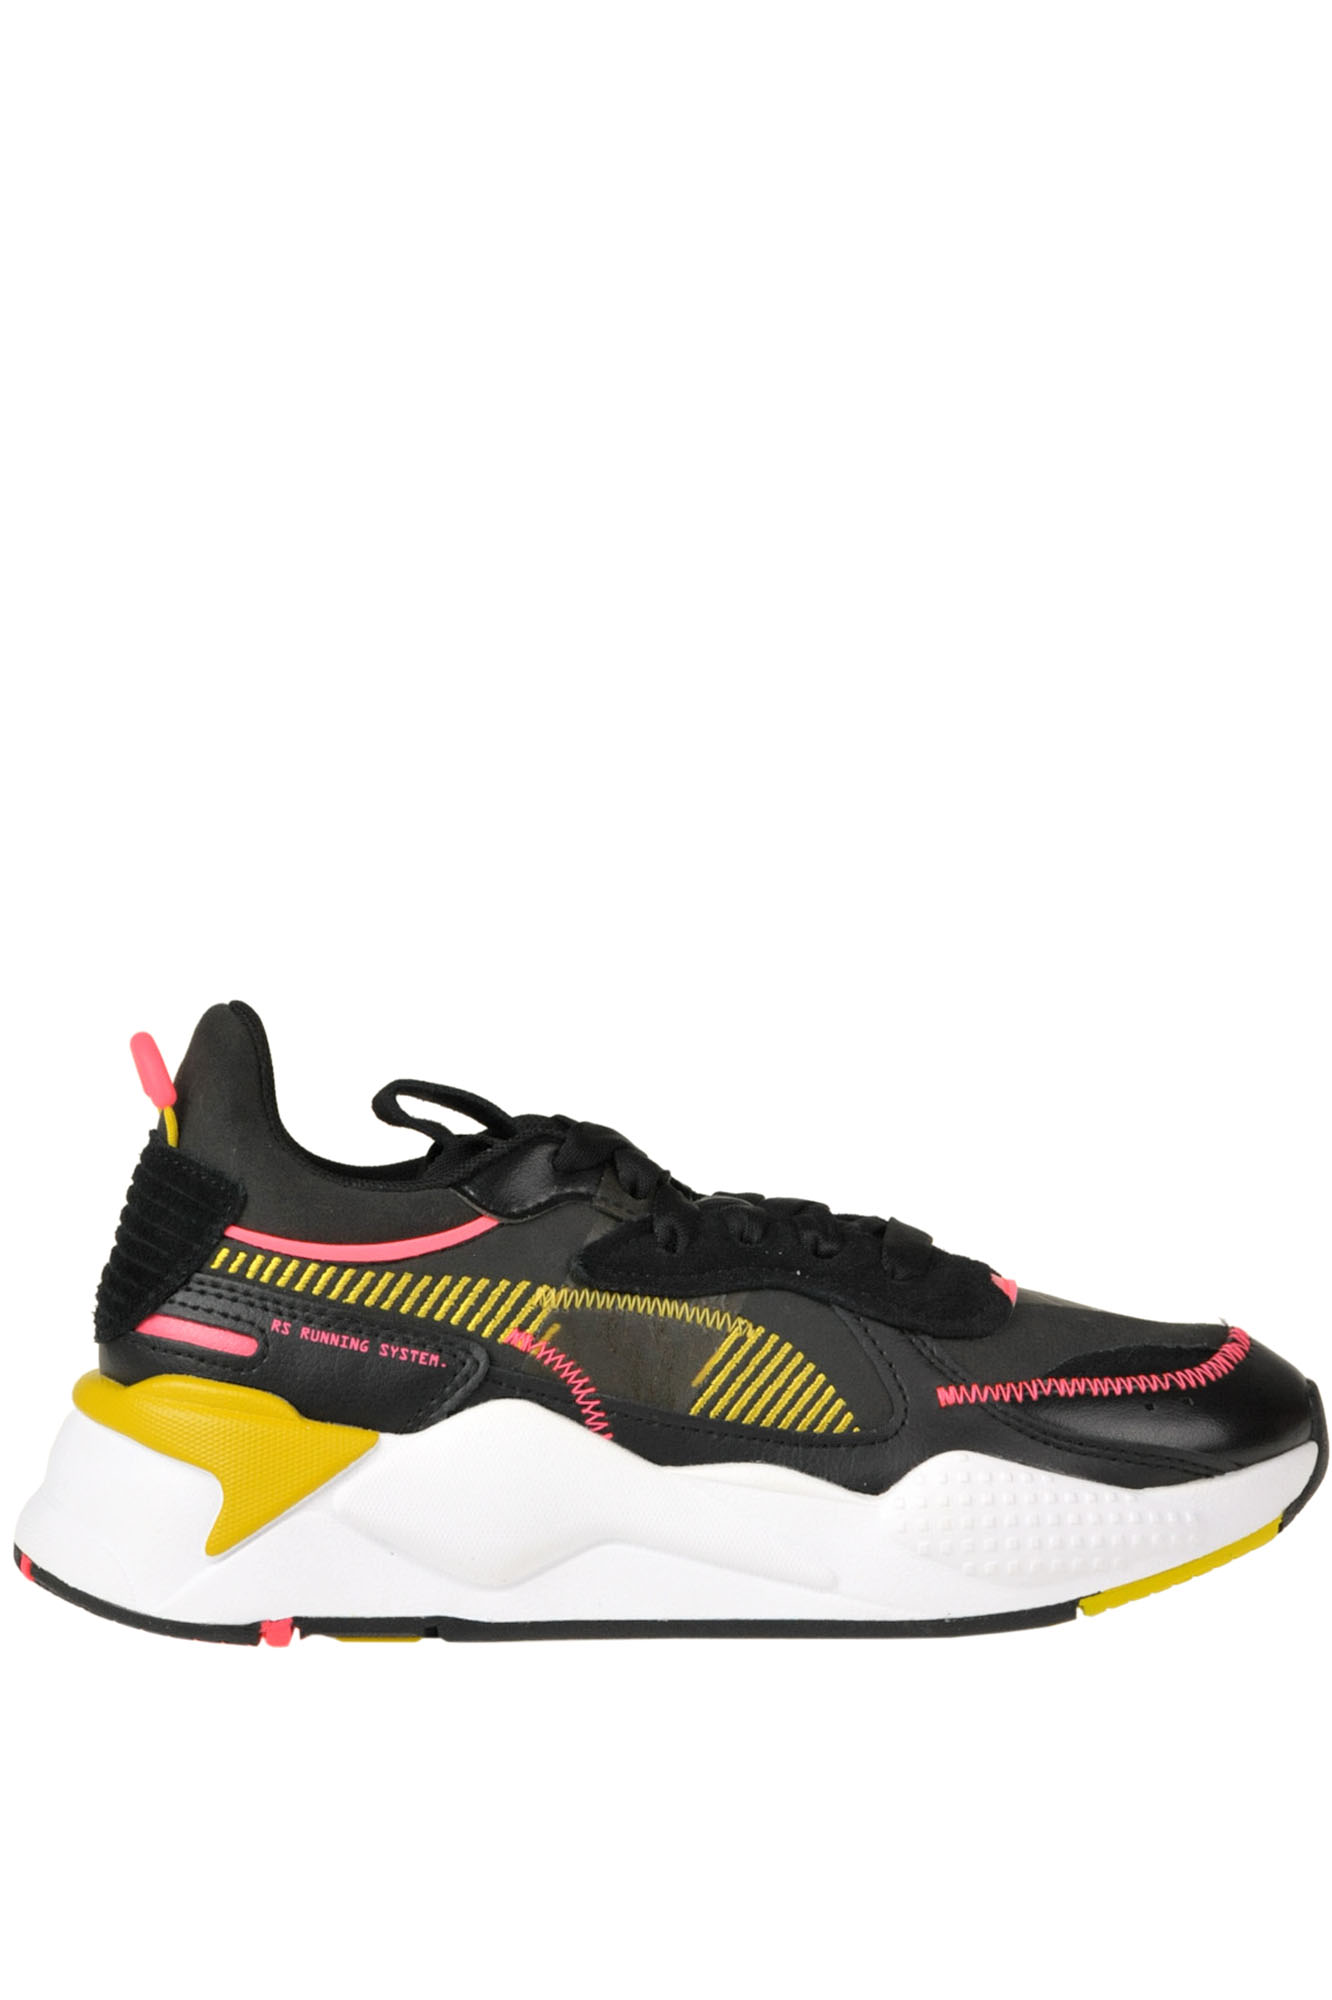 Puma RS-X Proto sneakers - Buy online